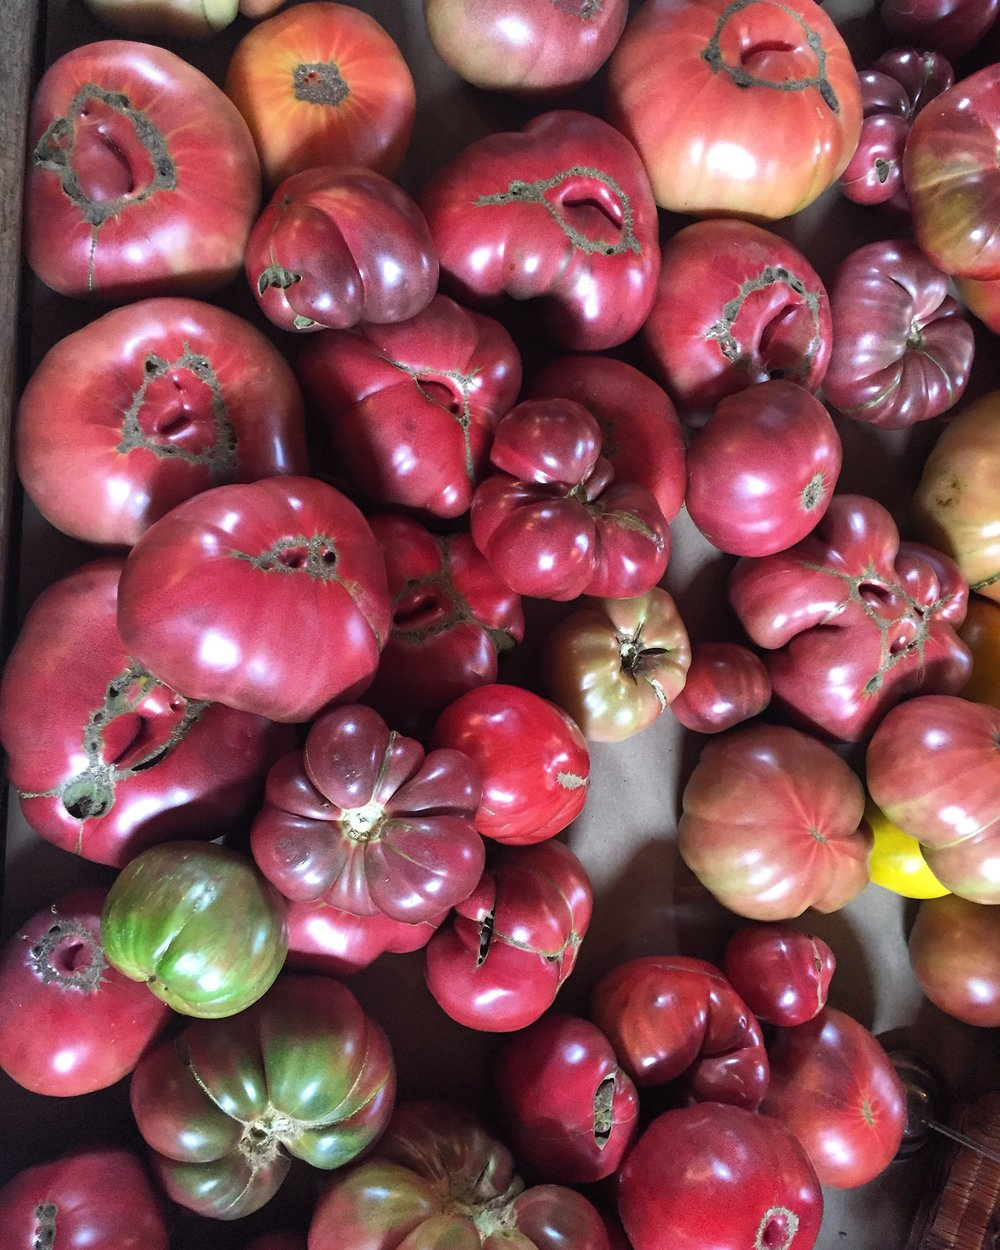 Heirloom Tomato Season, aka our favorite time of the year!